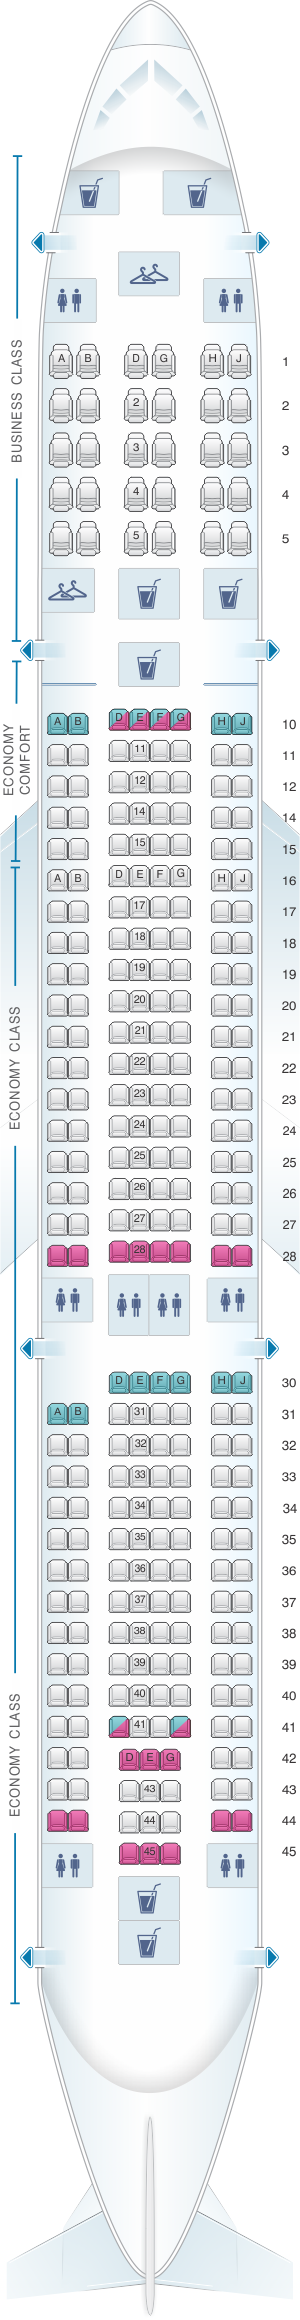 Seat map for KLM Airbus A330 300